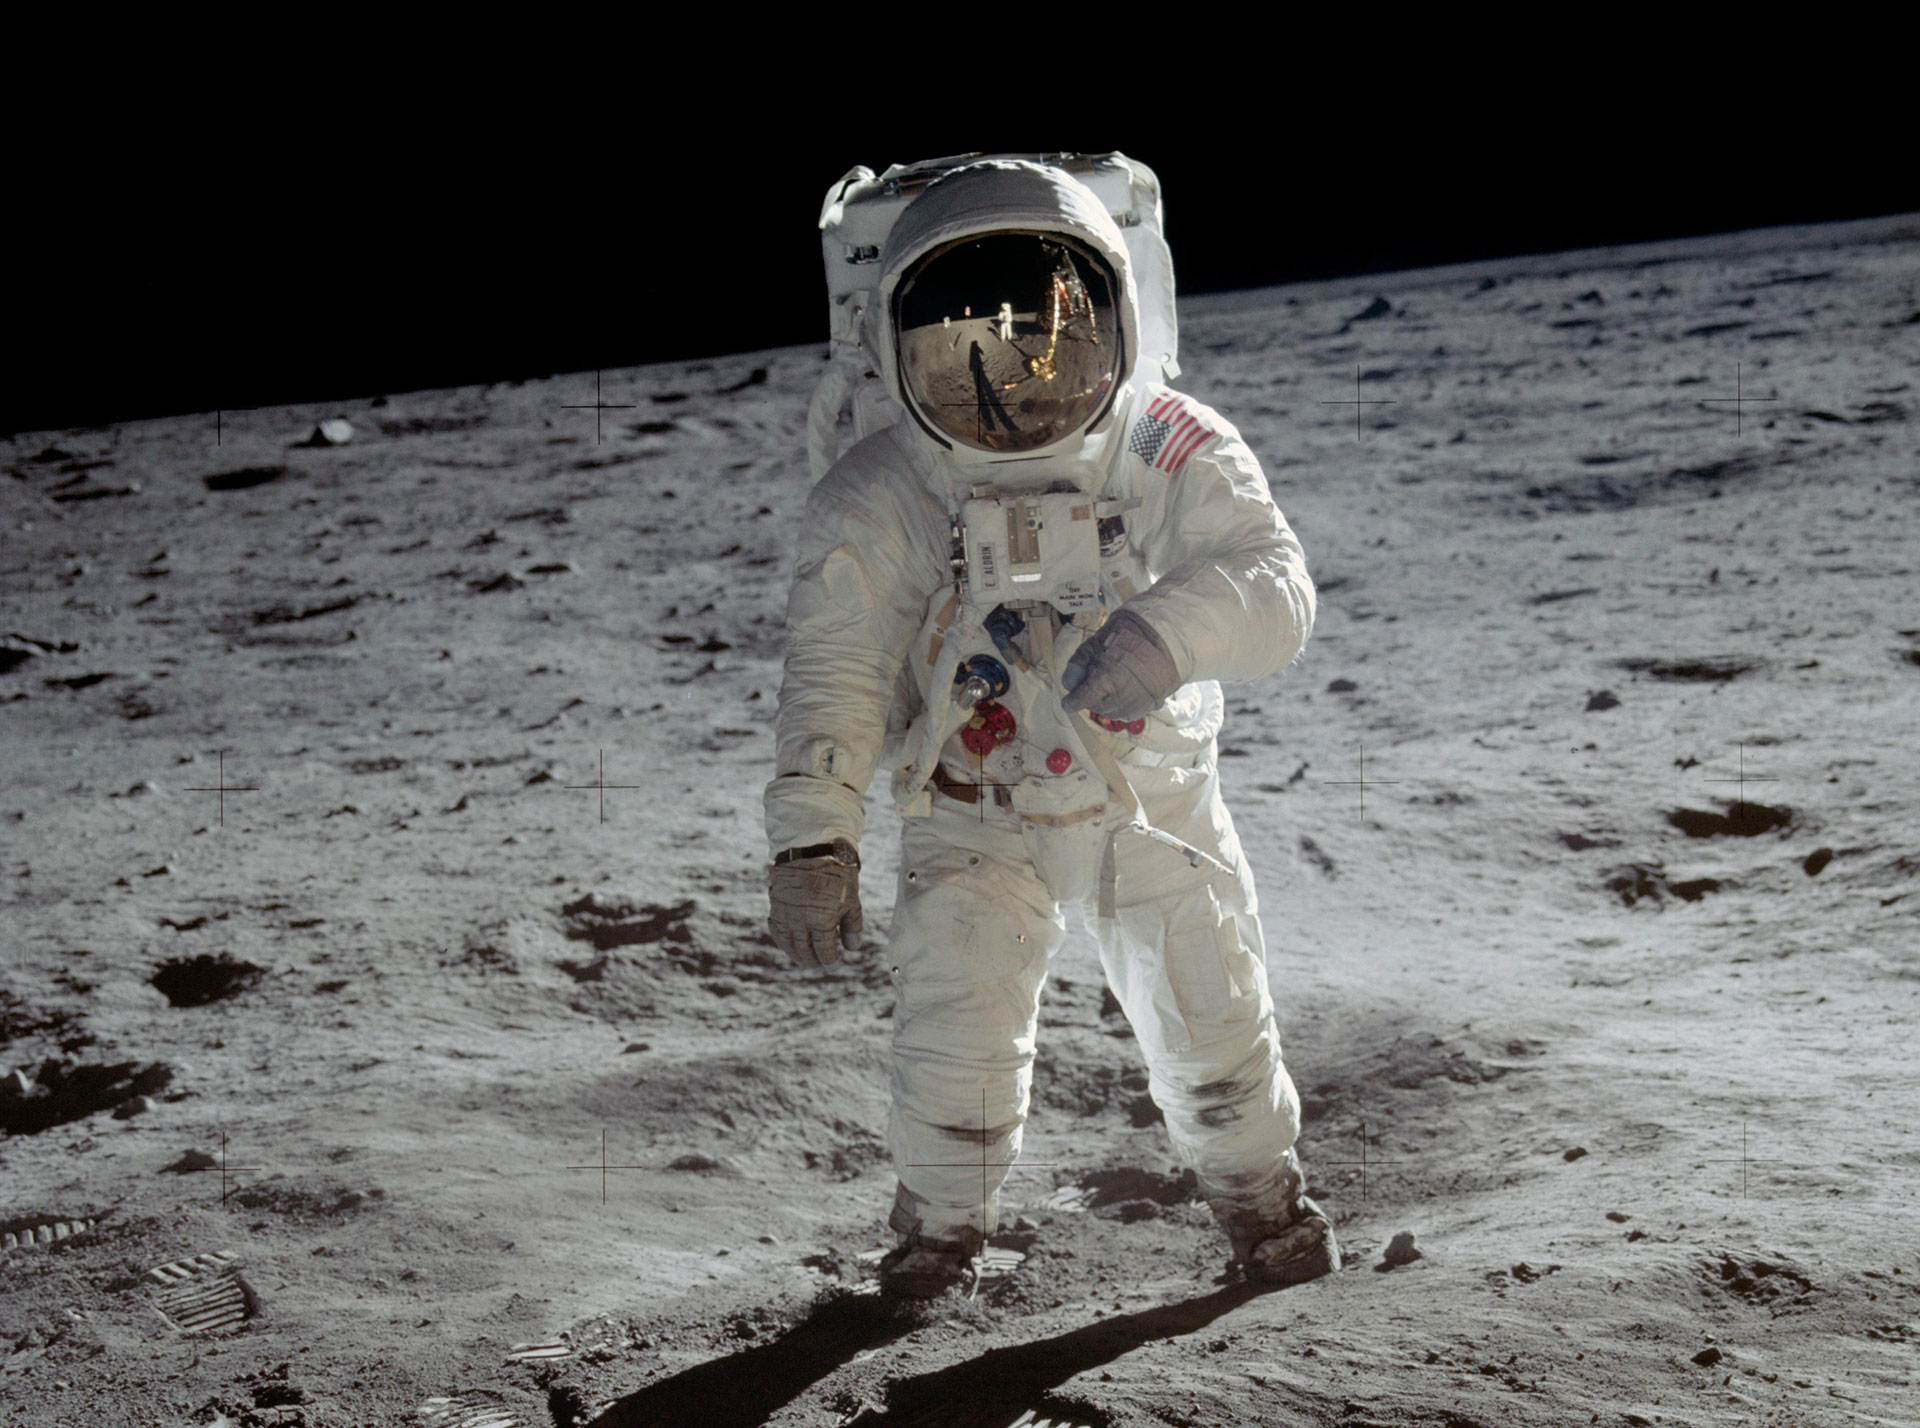 Astronaut Buzz Aldrin walks on the surface of the Moon.